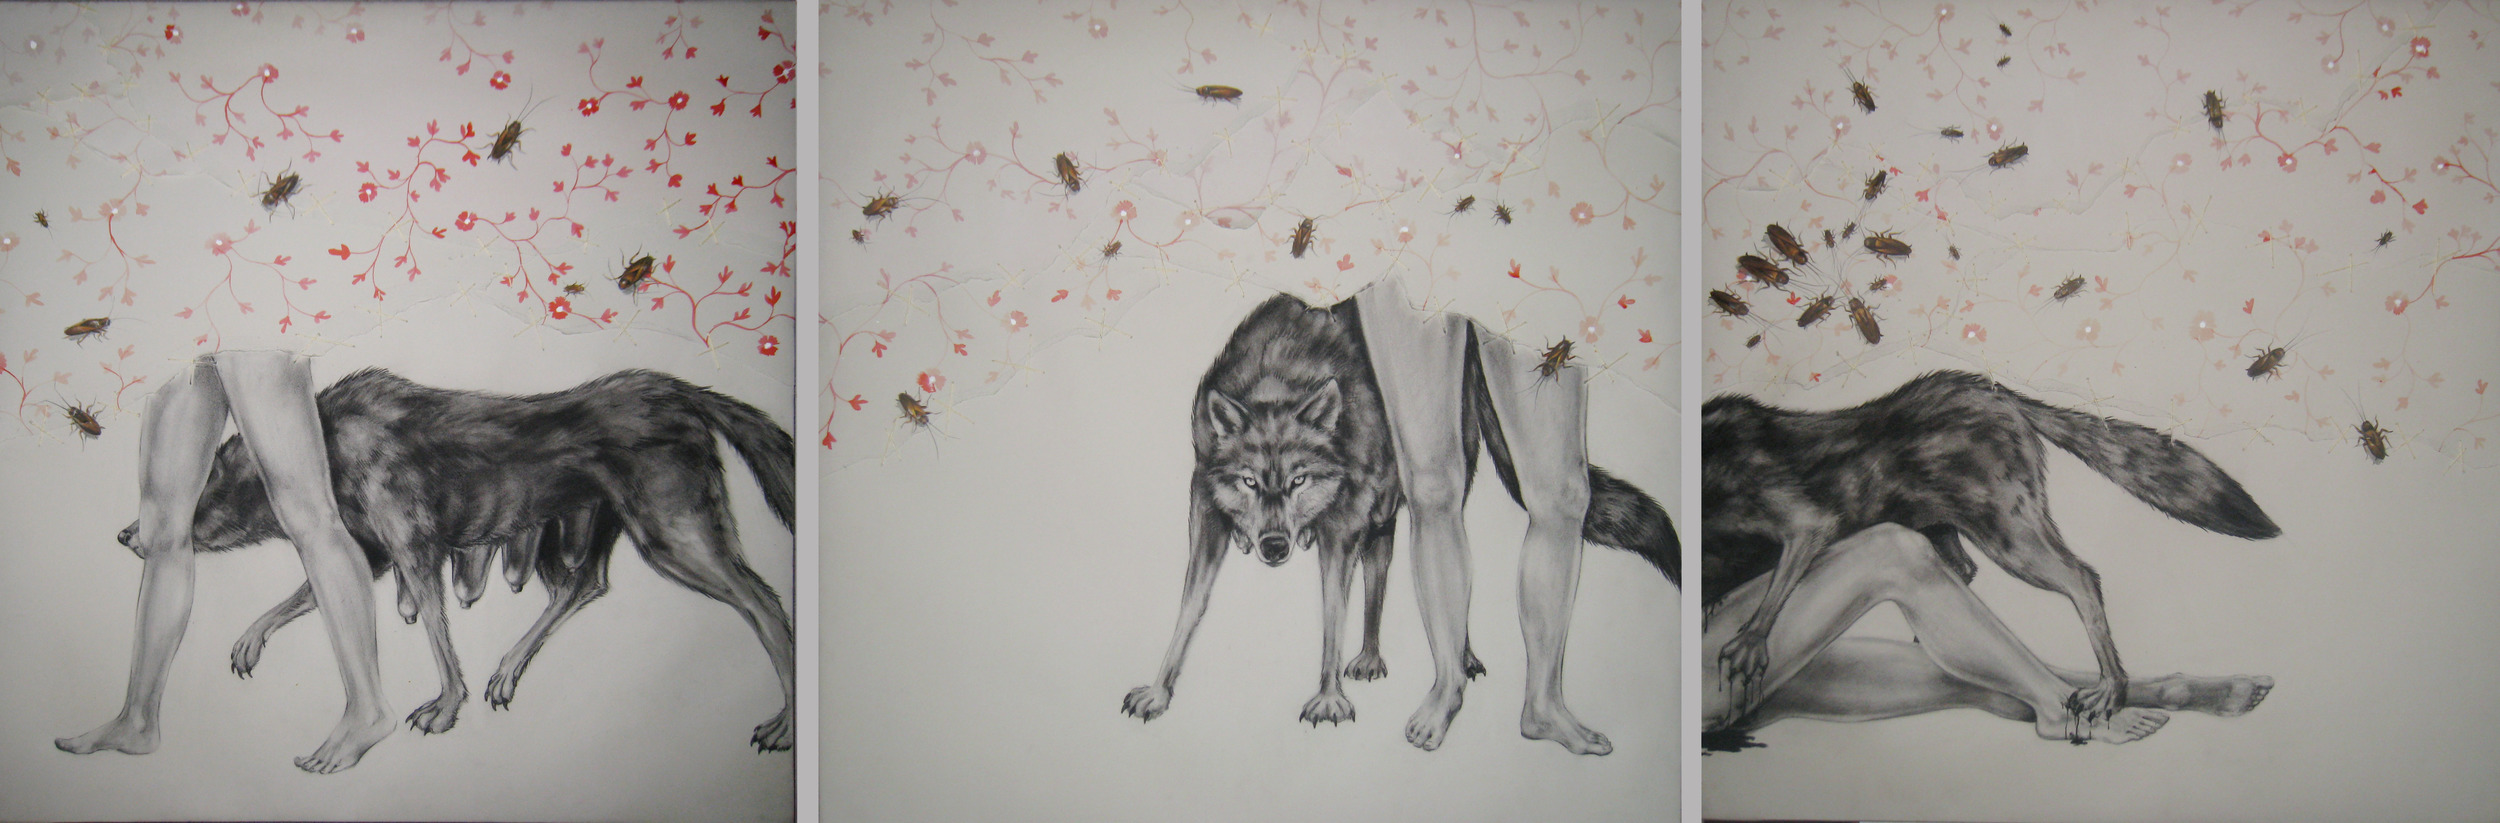 """Trauma   triptych, 2008  Charcoal, ink, and stitching on stretched paper  30x90"""""""